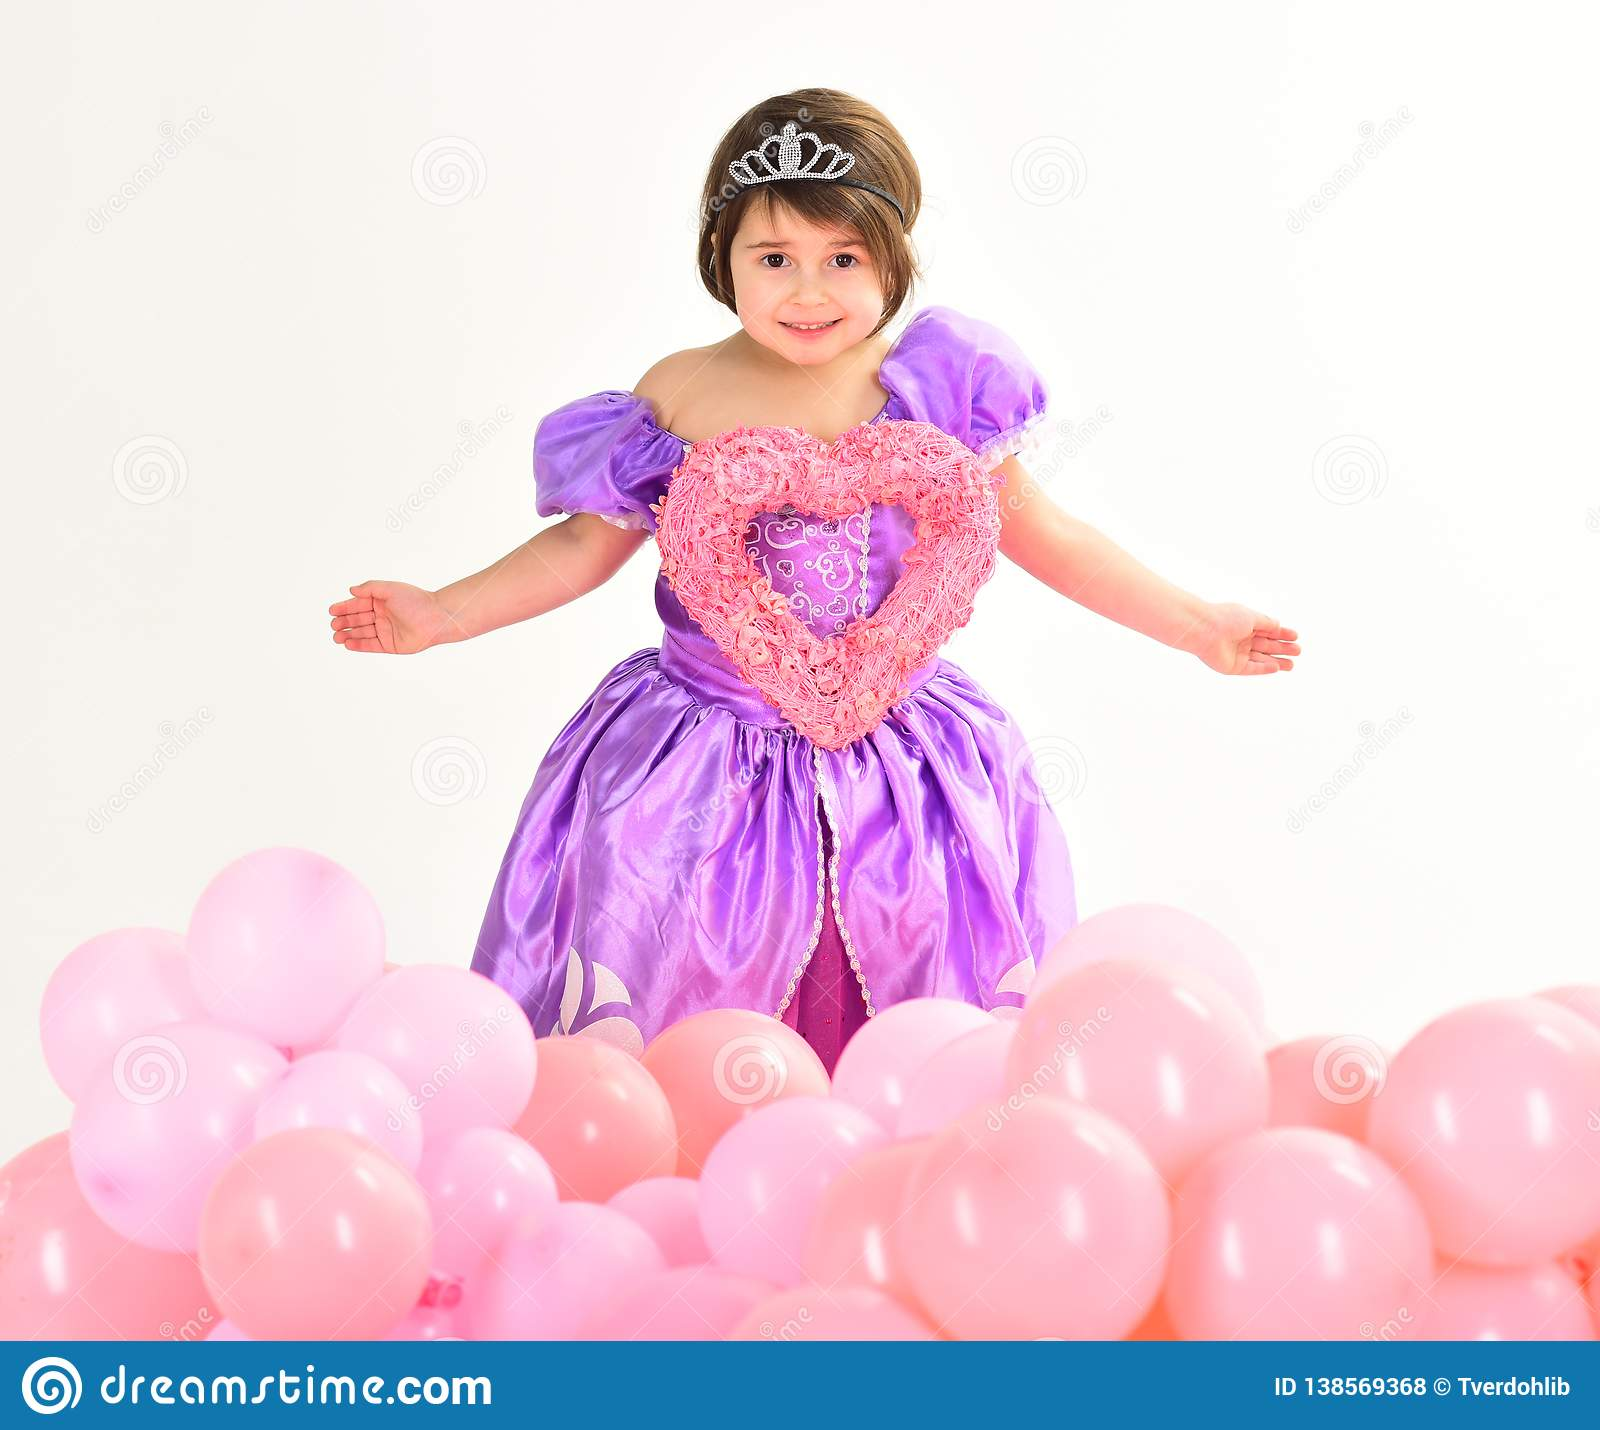 Valentines day. Childhood happiness. Kid fashion. Little miss in beautiful dress. Childrens day. Small pretty child hold